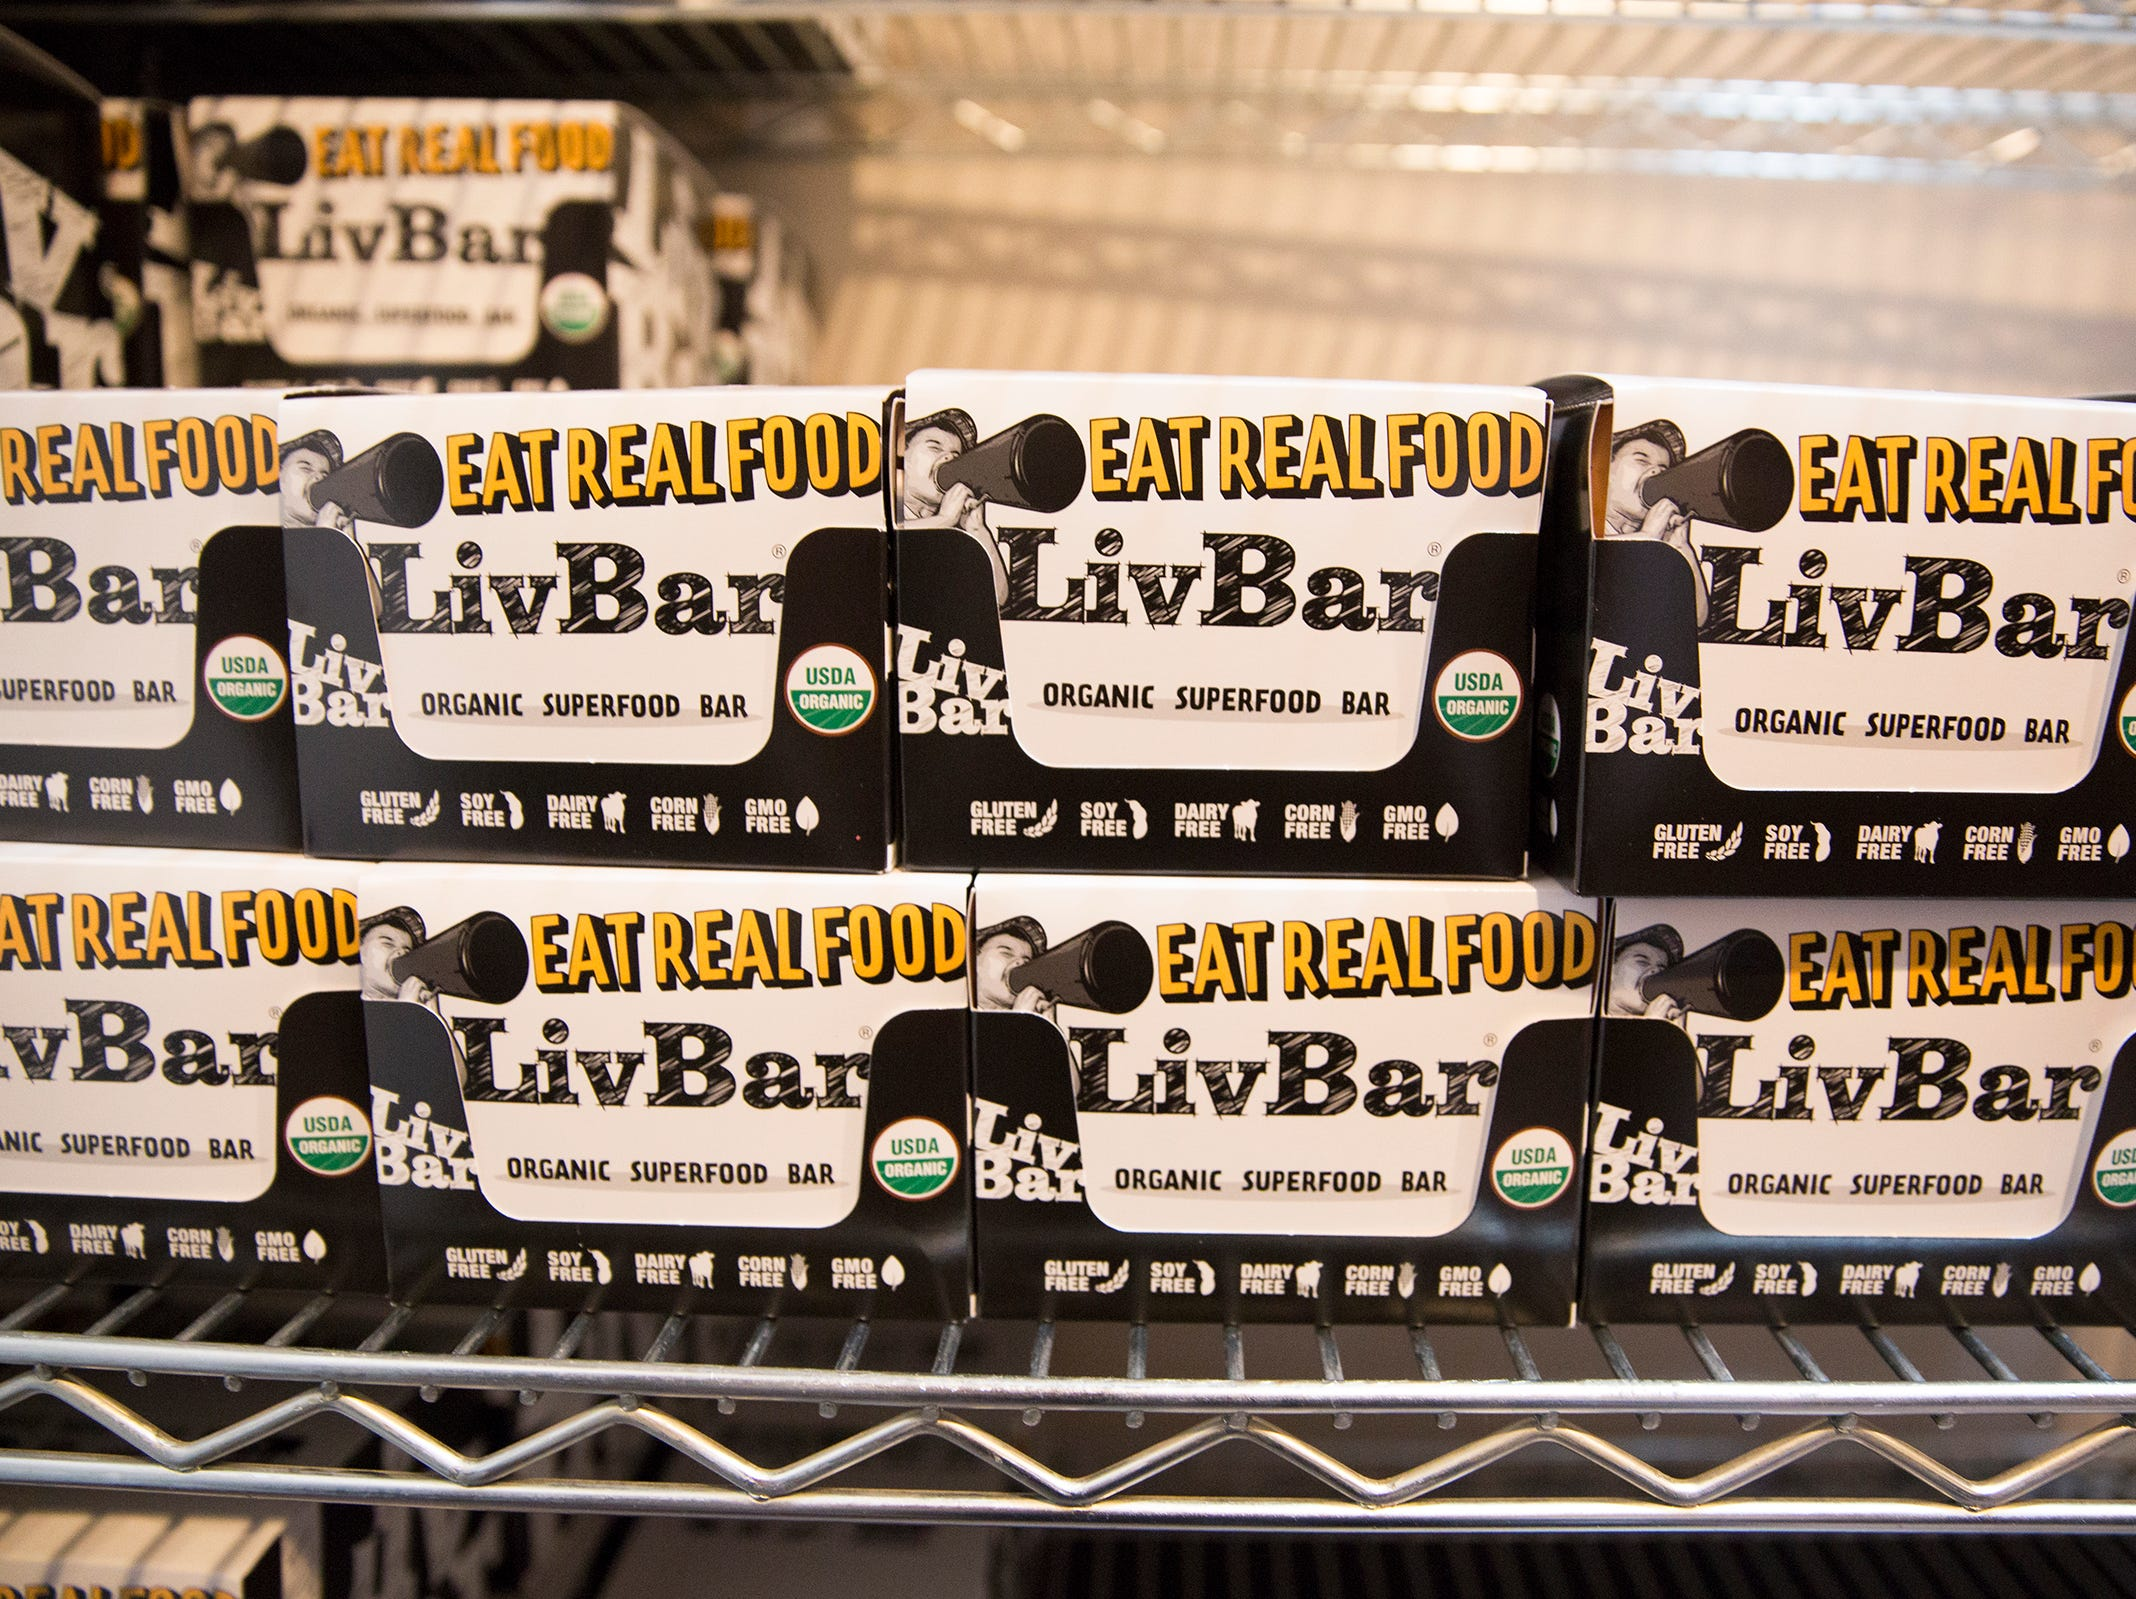 LivBar energy bars are stored in downtown Salem on Wednesday, Feb. 20, 2019. The bars are made with organic superfoods ingredients.